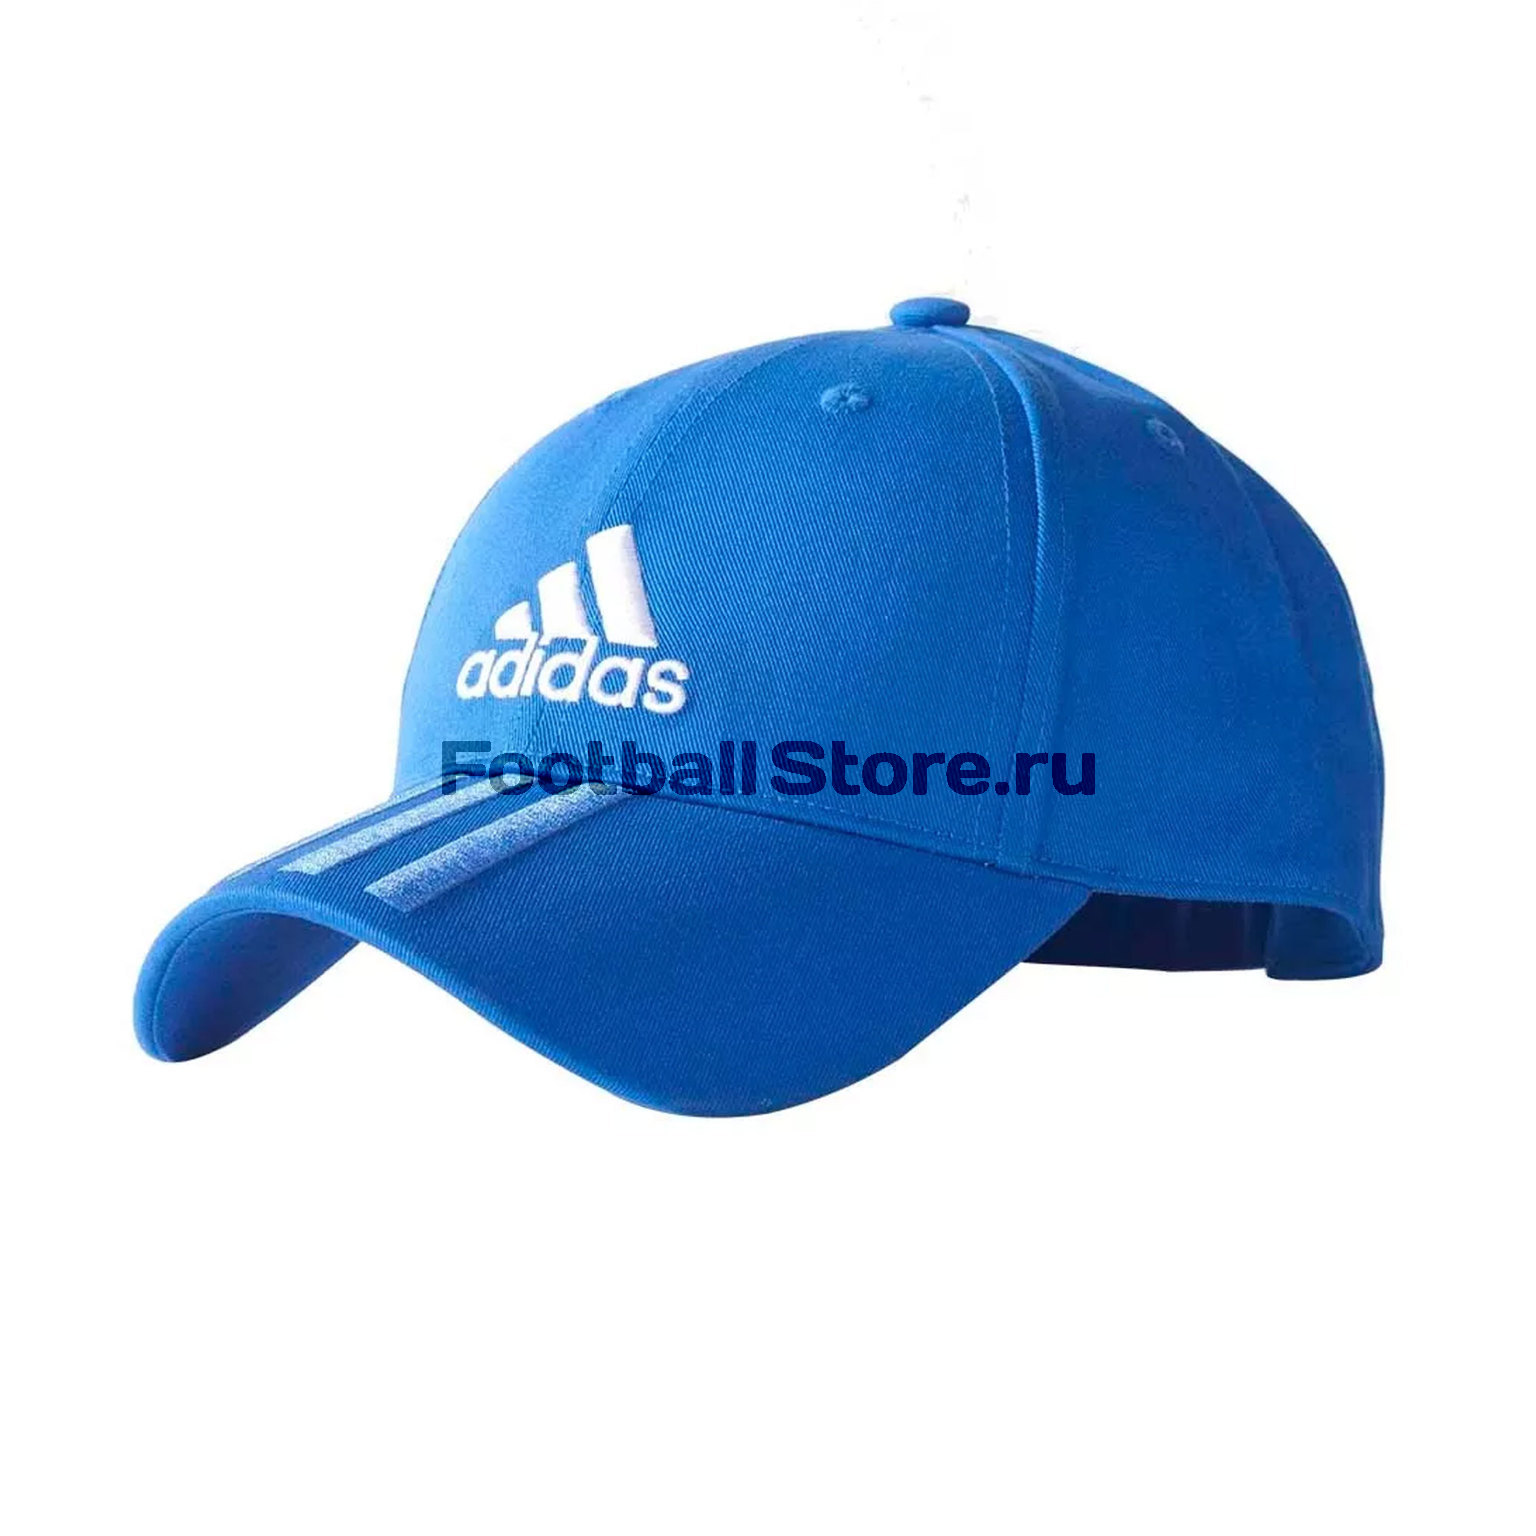 Бейсболка Adidas Tiro Cap BS4769 md3030 metal detector underground pinpointer nugget coin mine gold hunter bug pro gold digger finder